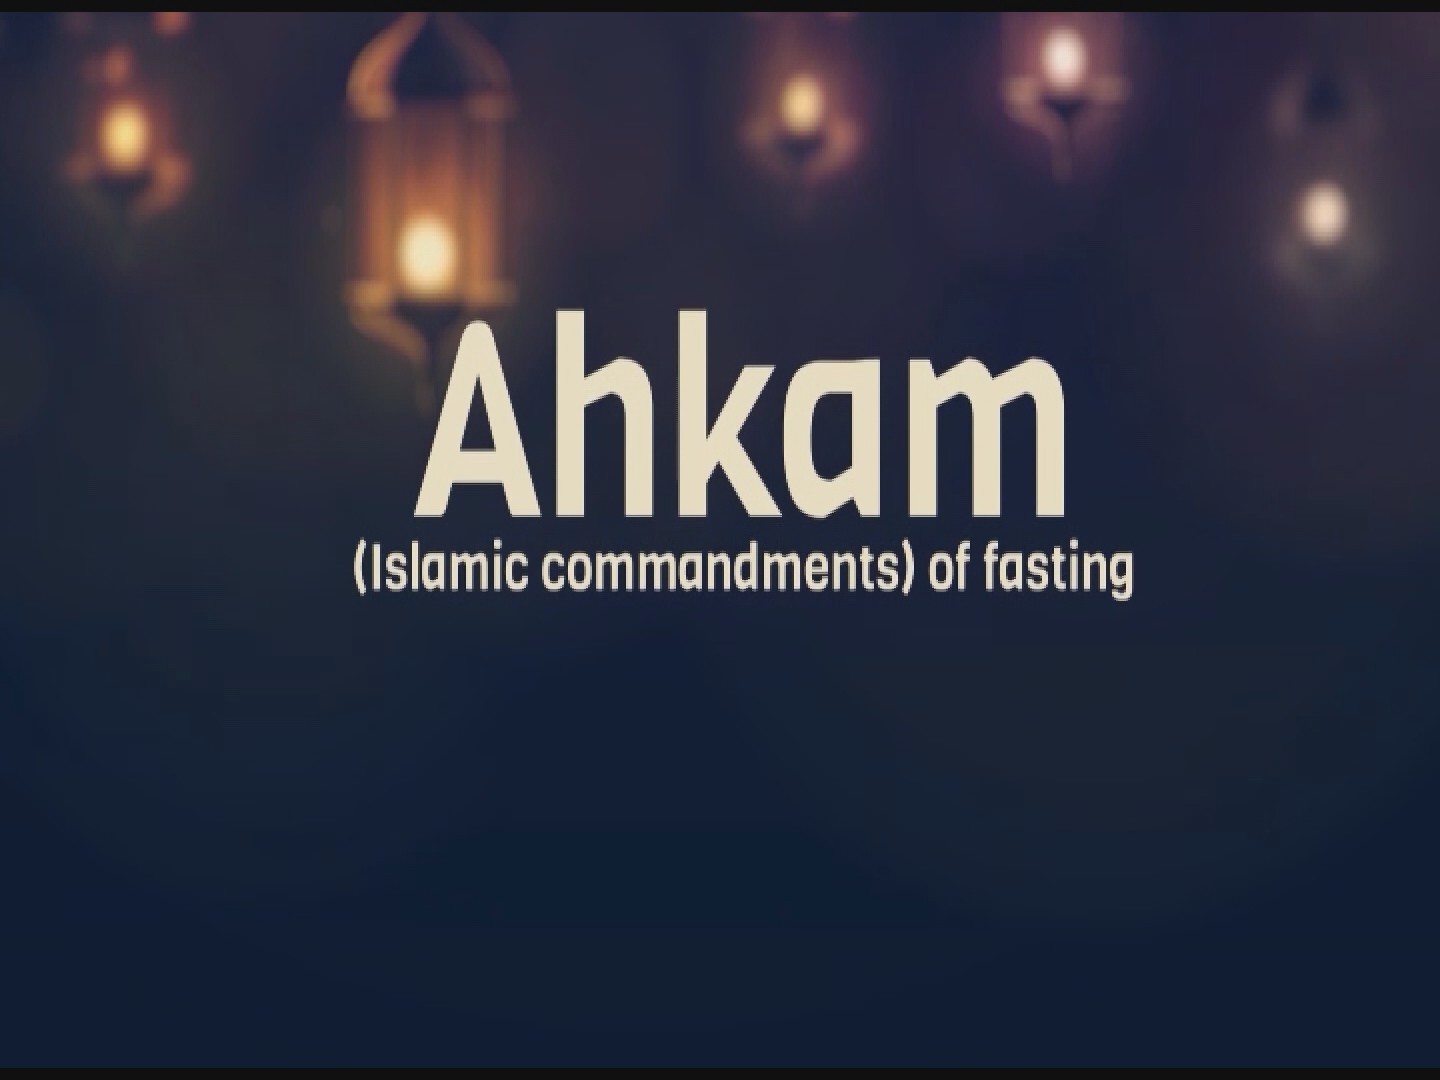 (Ahkam (islamic commandments